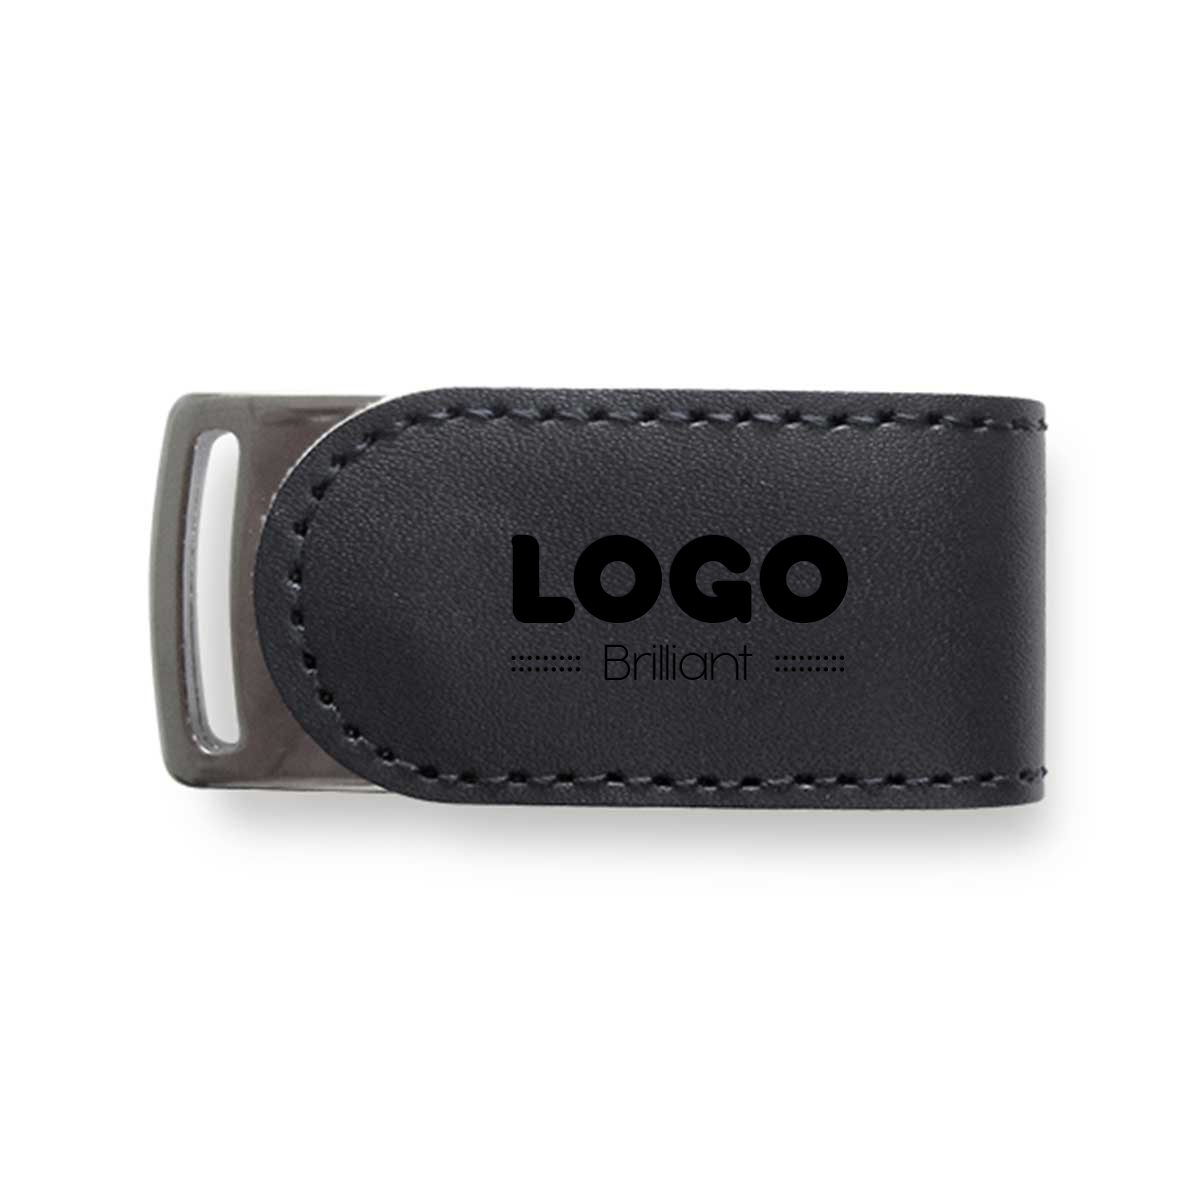 134862 leather flash drive one color imprint one location software encrypted 2gb